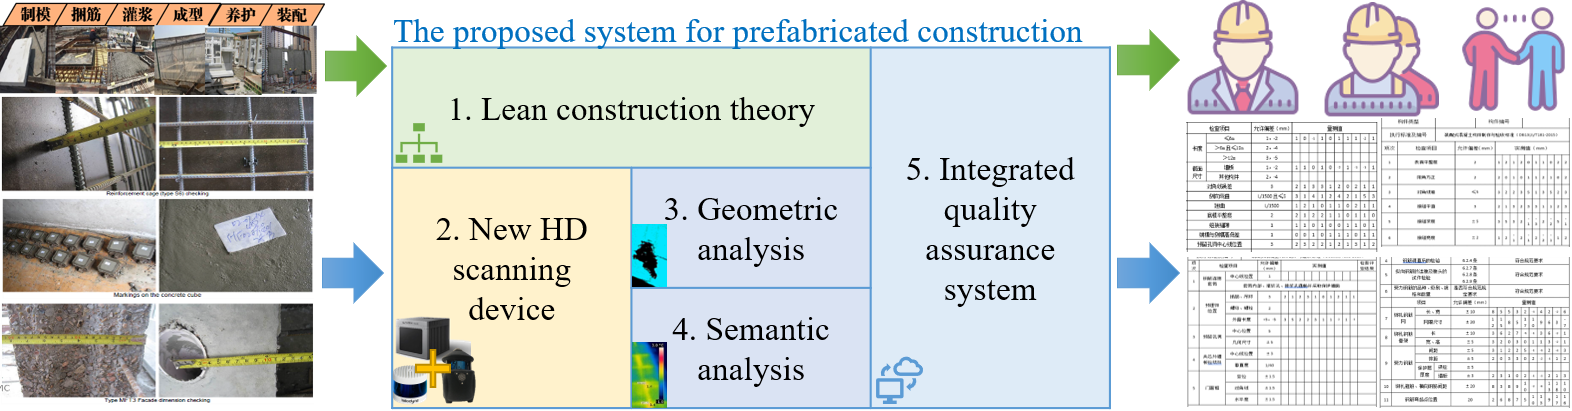 High-Definition 3D Point Cloud and Dynamic Semantics Enabled Lean Quality Assurance System for Prefabricated Housing Products